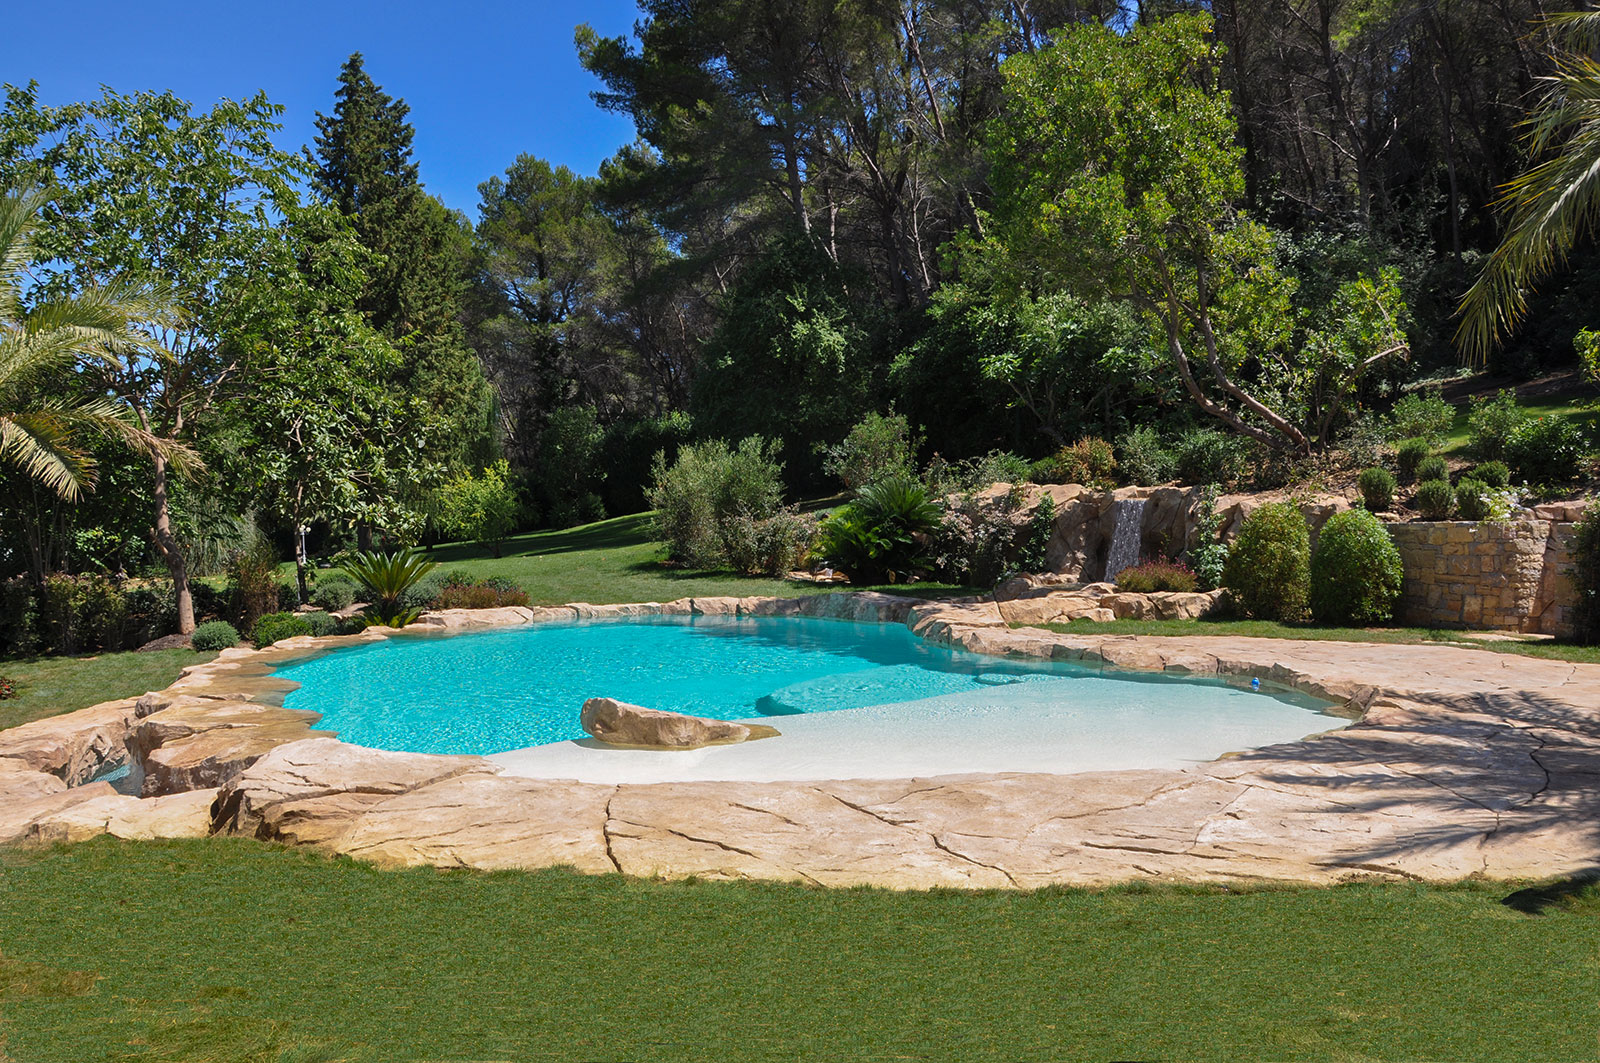 Piscines paysag es d 39 exception bassins cascades for Constructeur de piscine